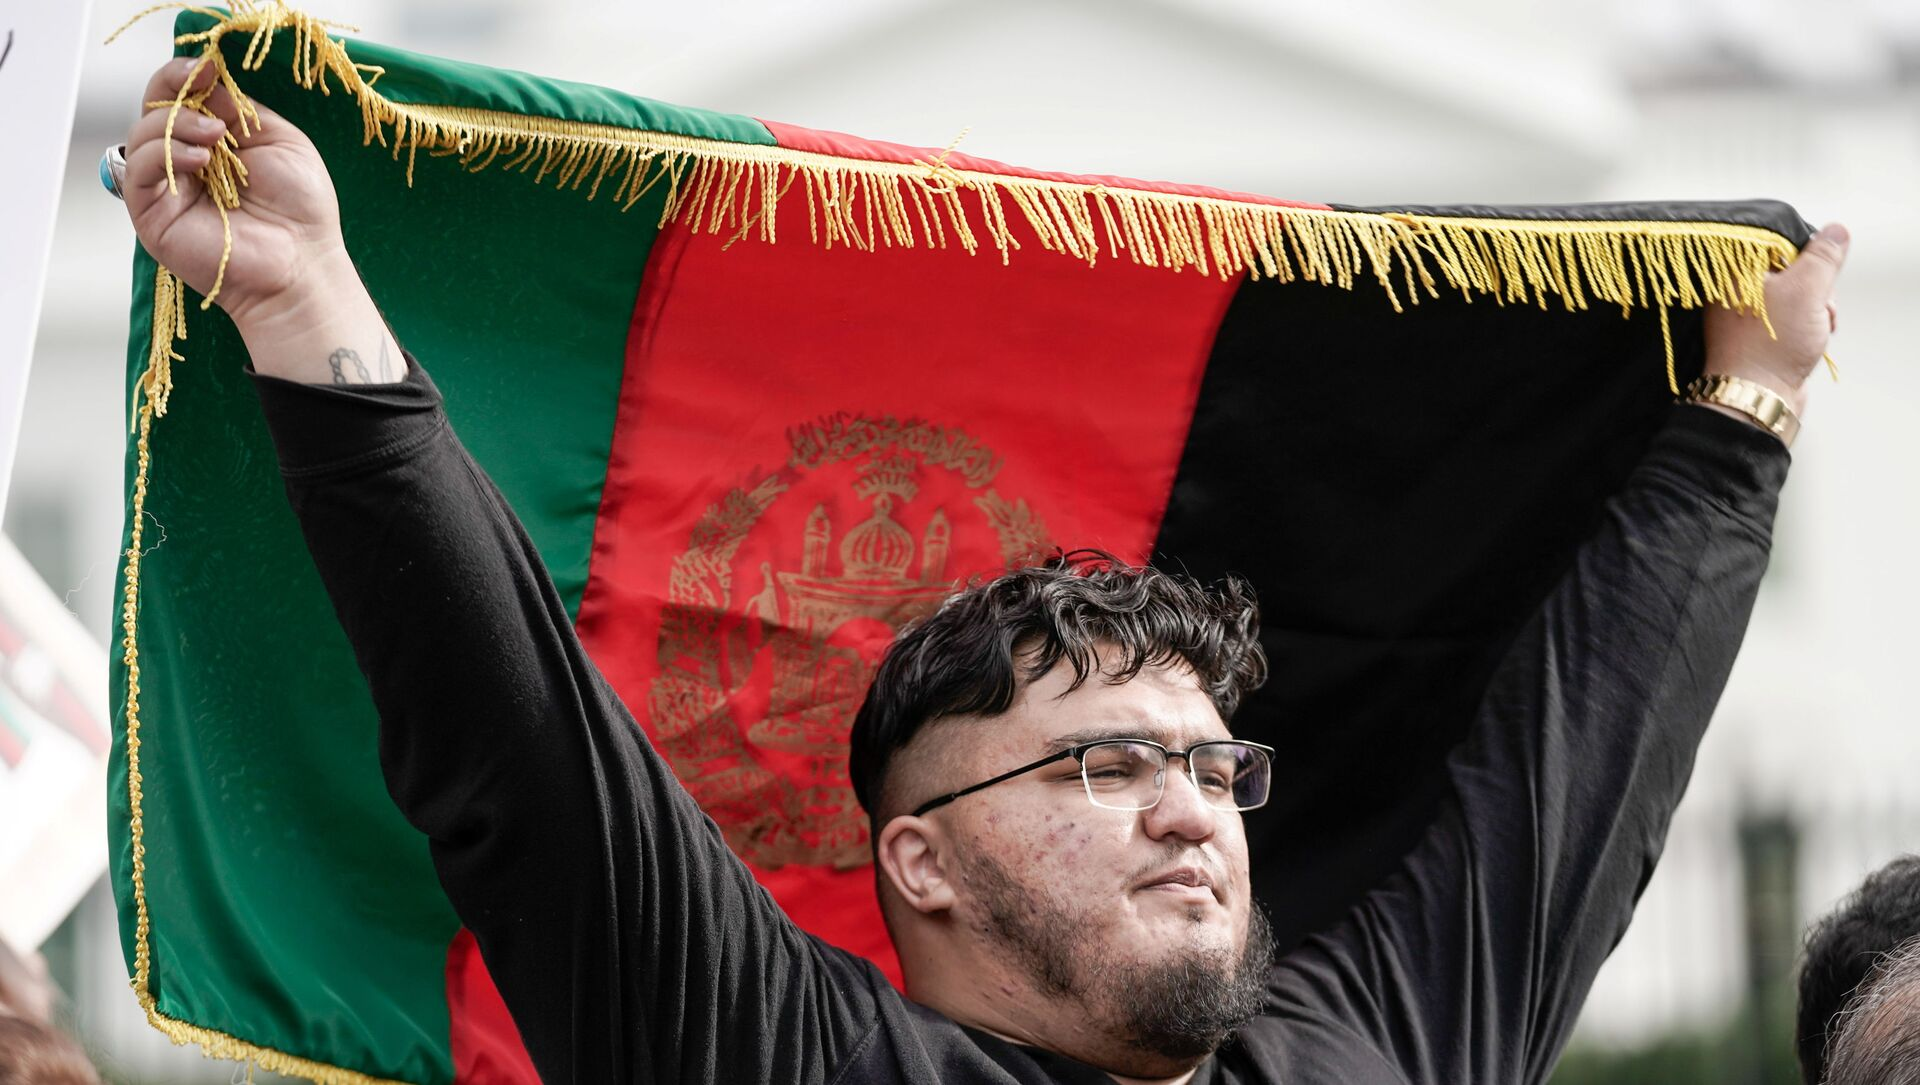 A man holds Afghanistan's flag, as demonstrators shout Peace in Afghanistan and hold up signs as they gather in front of the White House in Washington, U.S., August 15, 2021 on the day Taliban insurgents entered Afghanistan's capital Kabul.   - Sputnik International, 1920, 15.08.2021